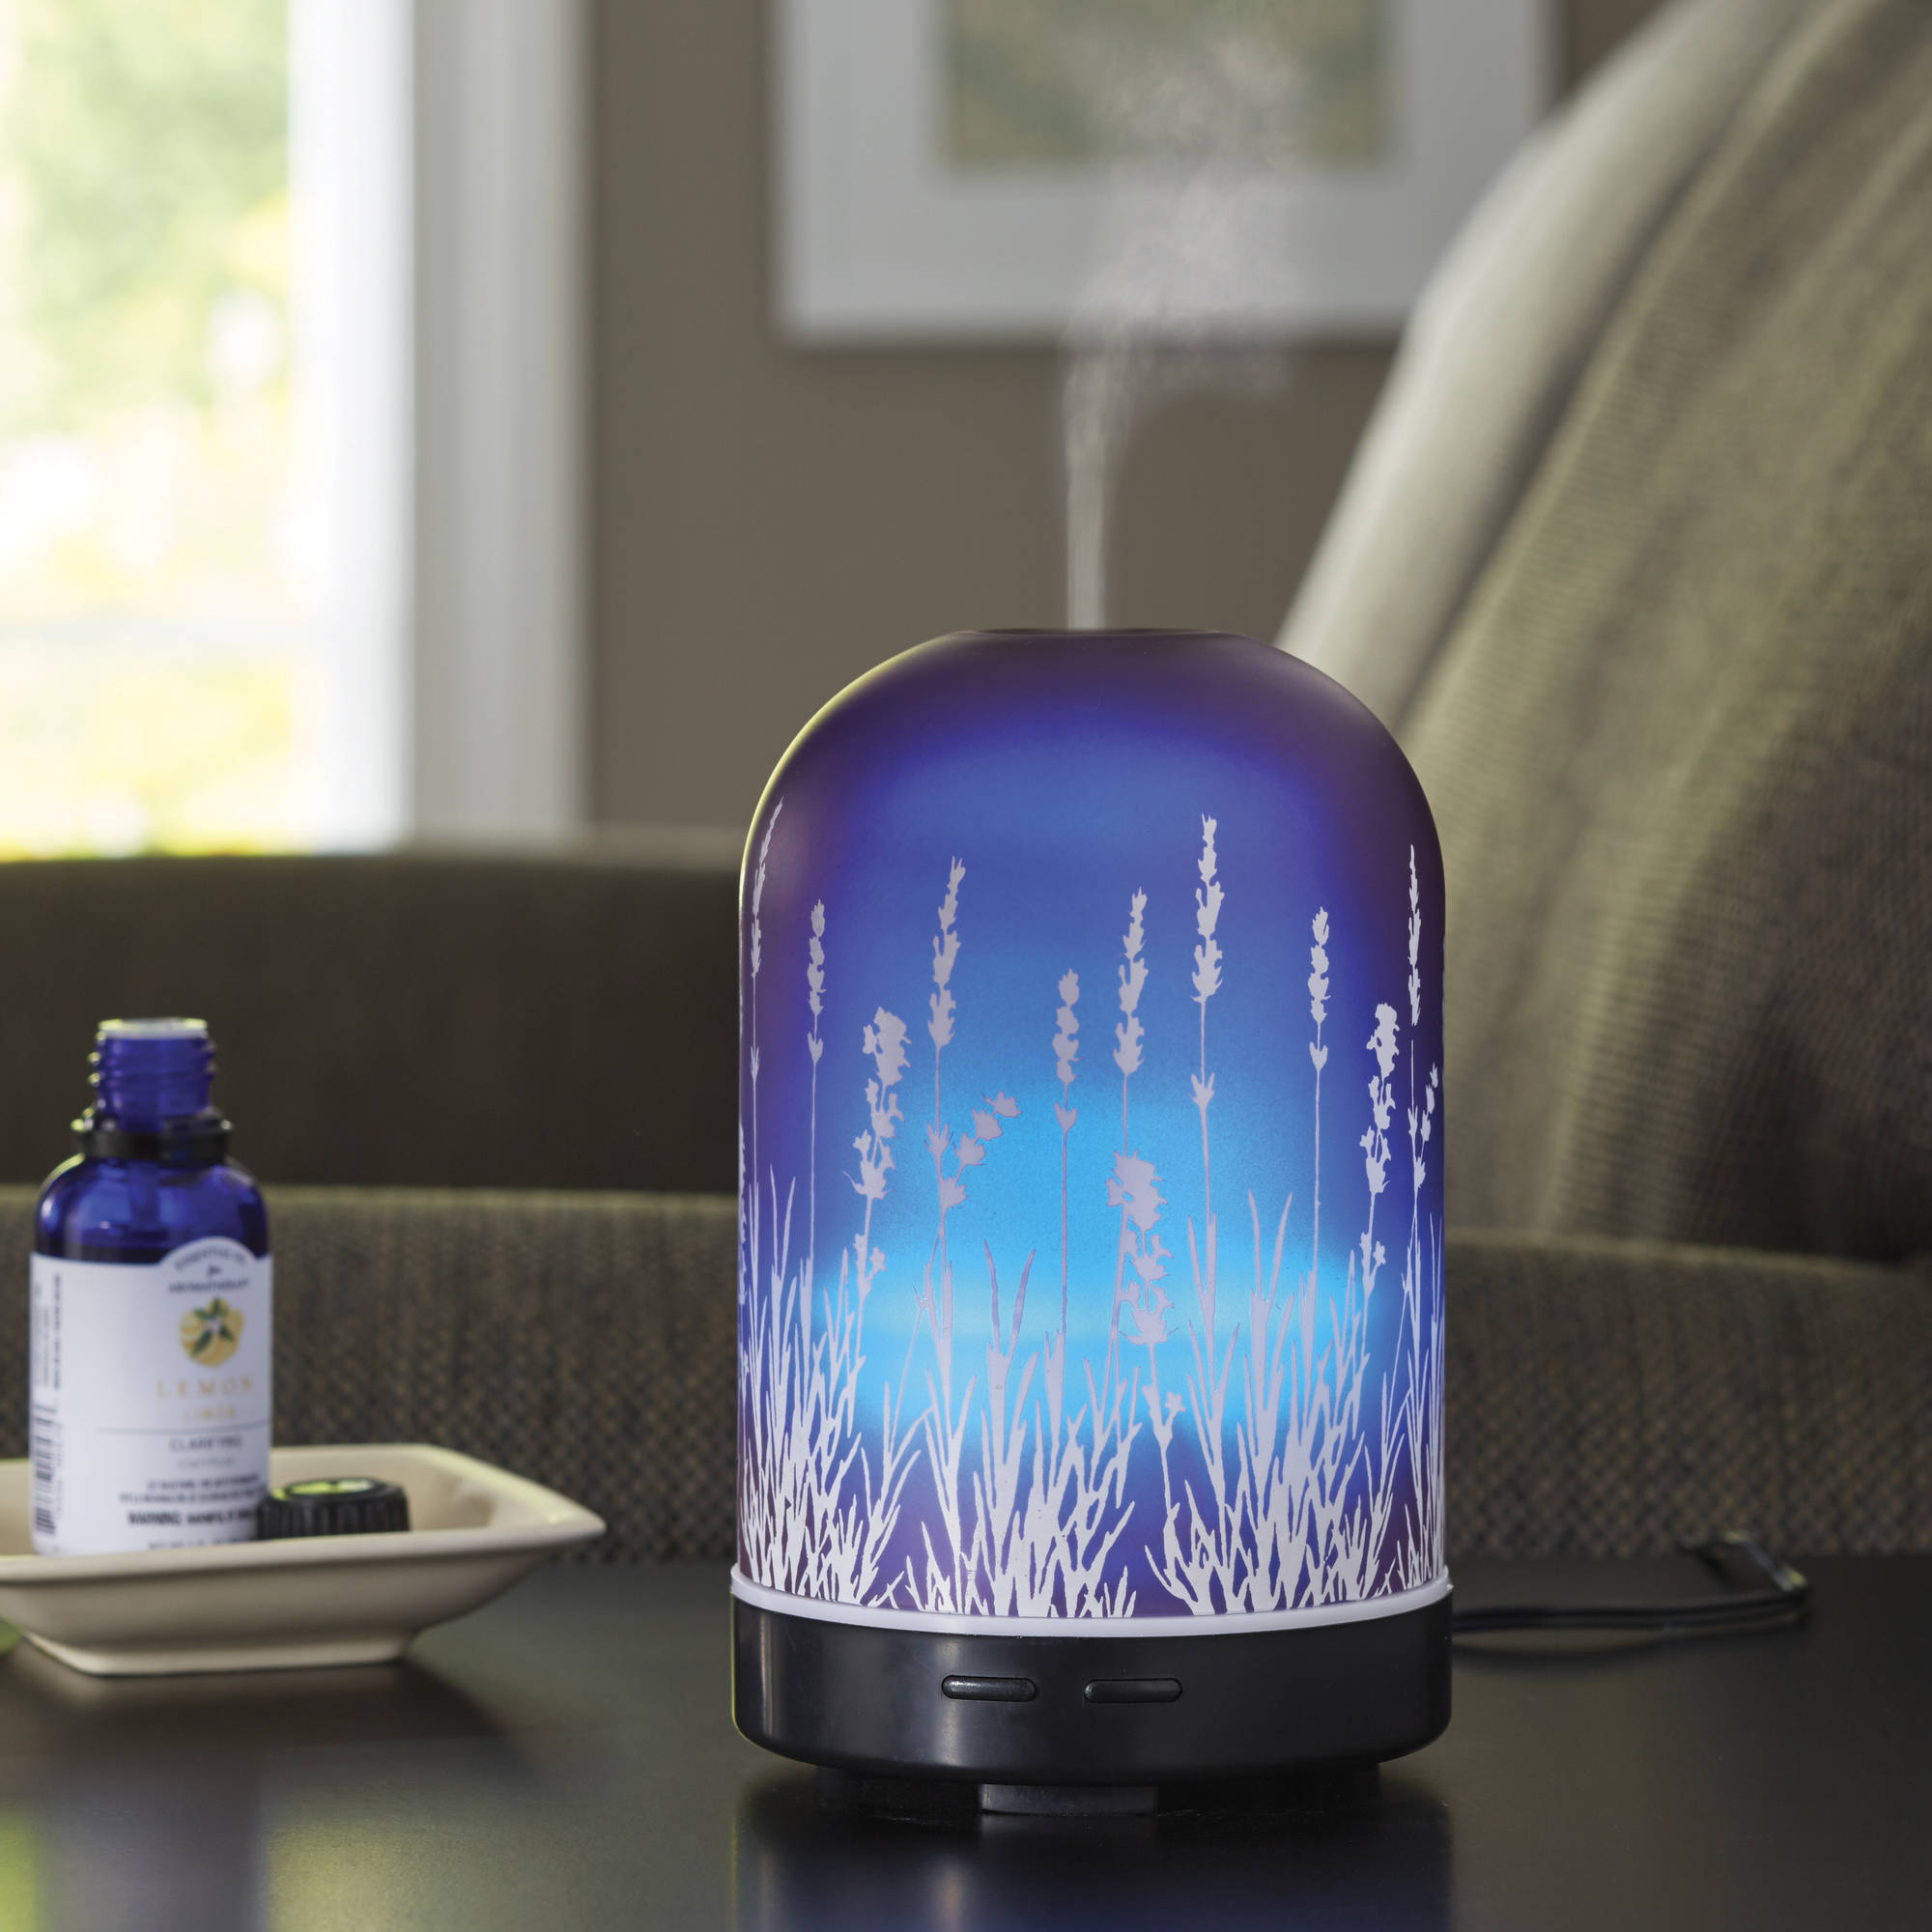 Home Essential better homes and gardens 100 ml essential oil diffuser, lavender